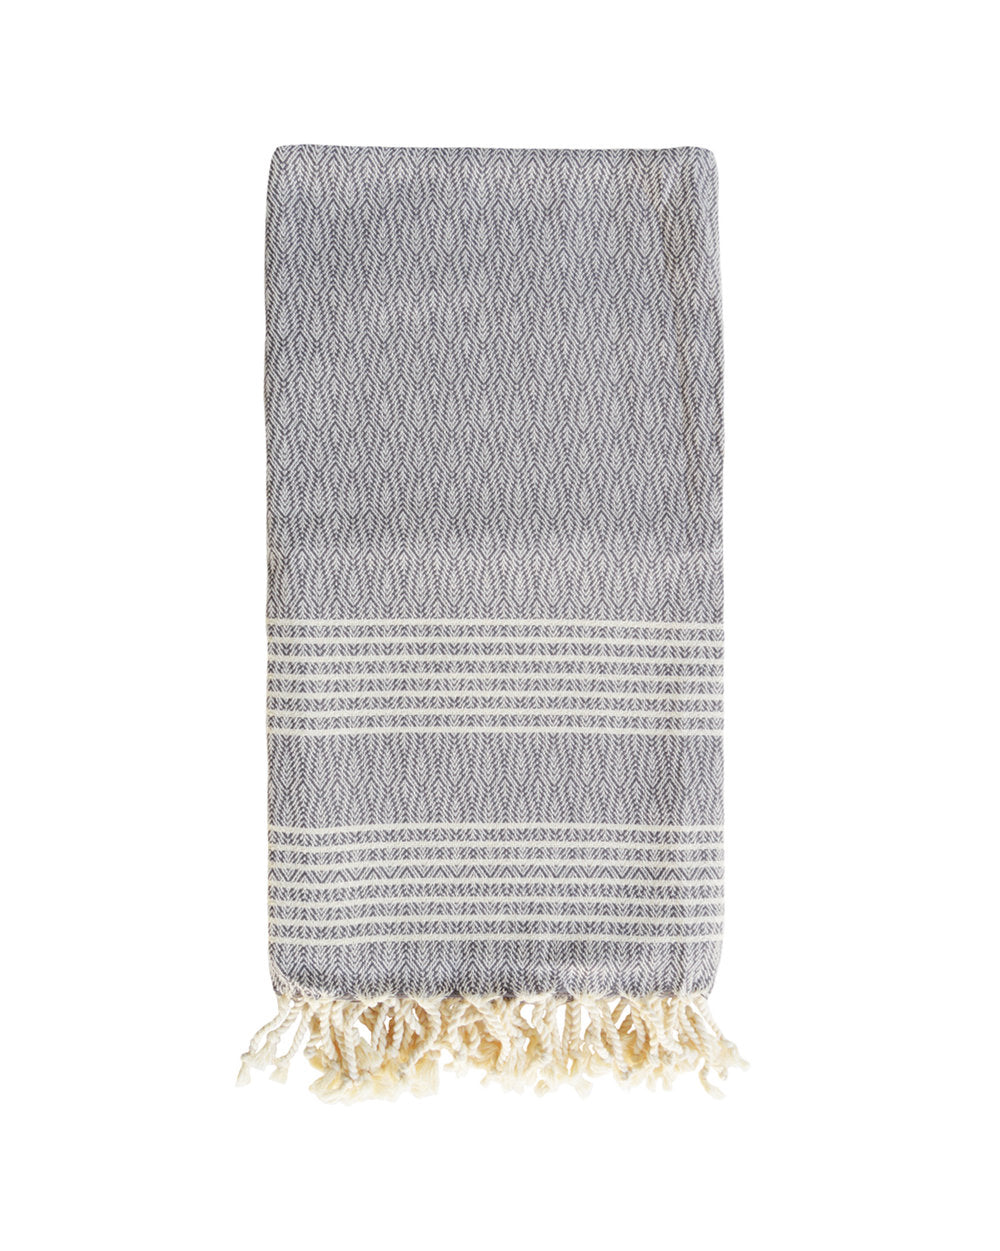 LIVADIA TEXURED TOWEL + THROW - GREY